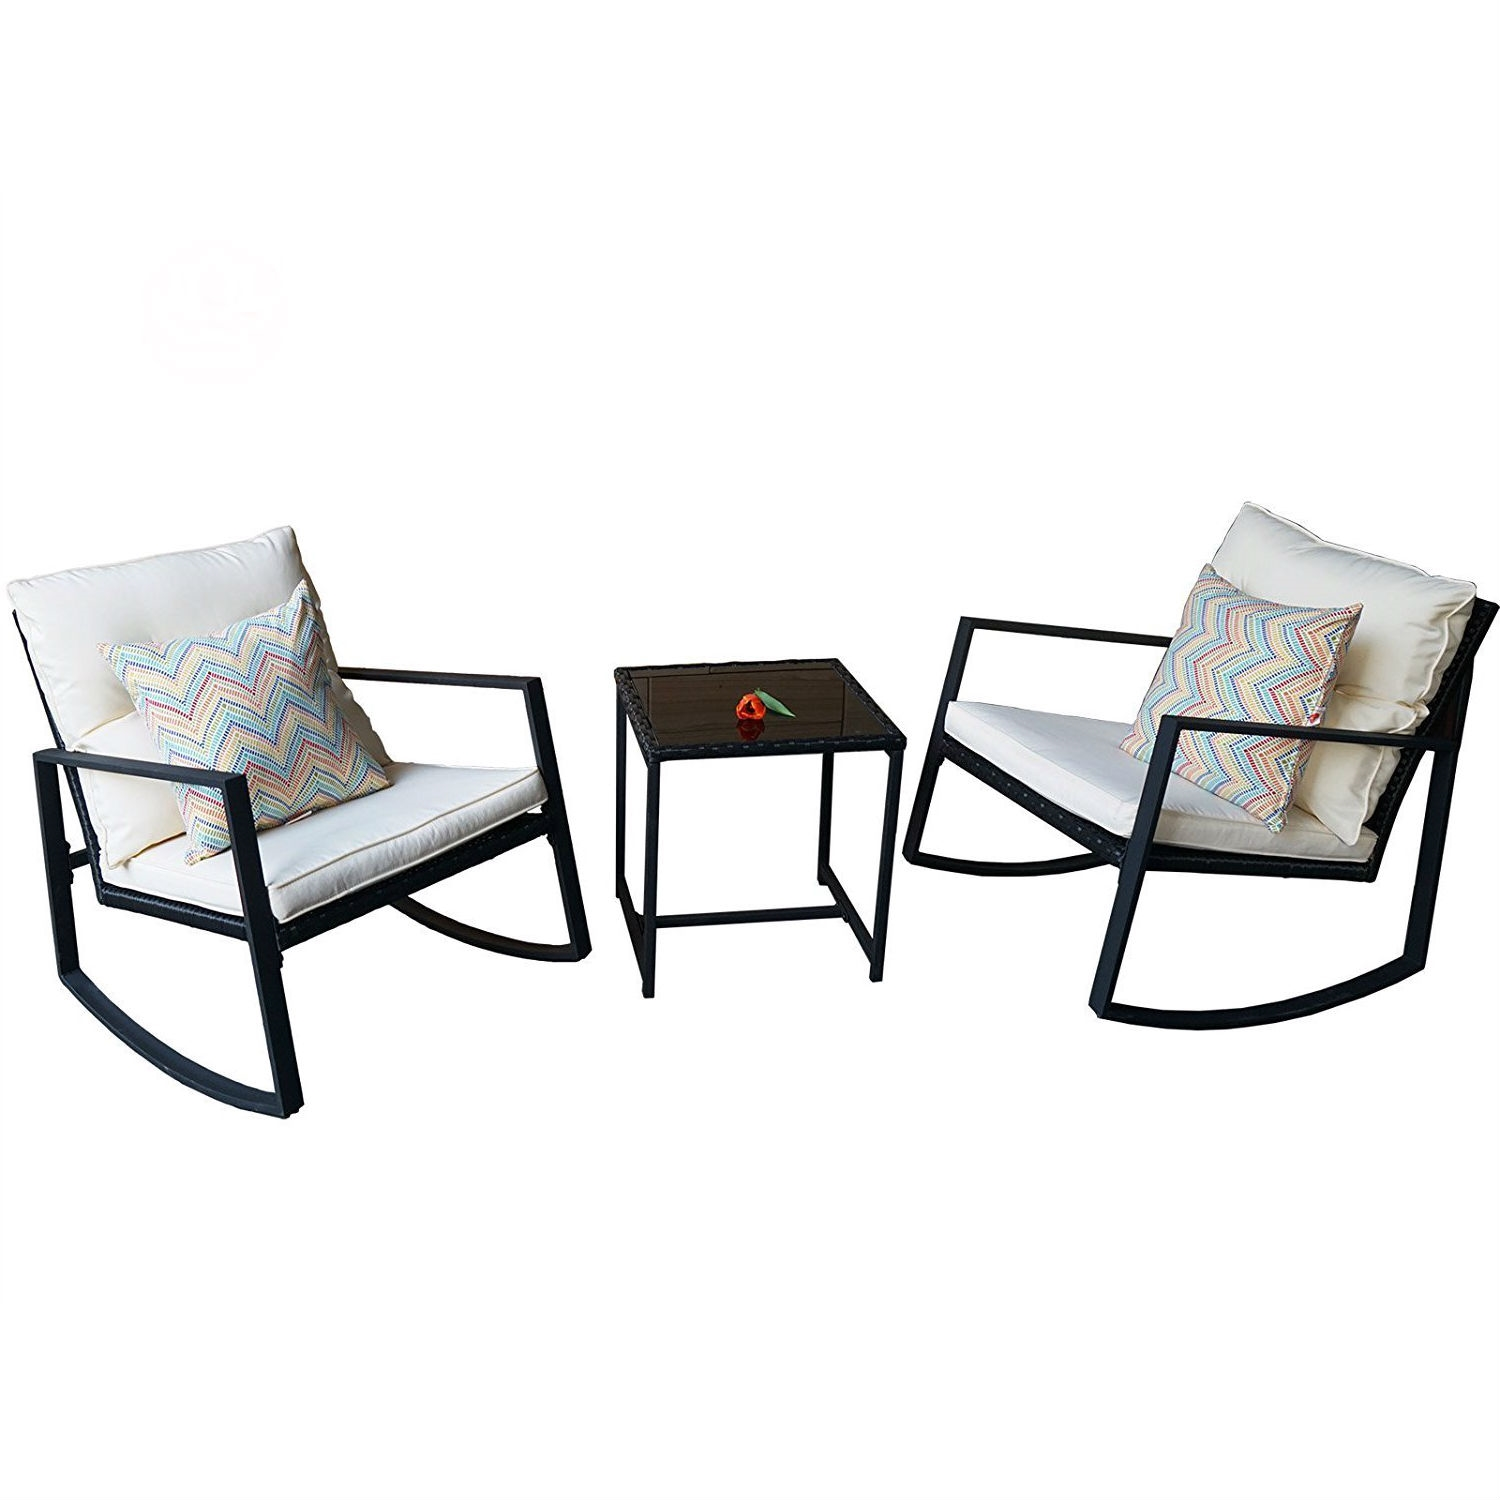 black outdoor 3 piece patio furniture set with 2 rocking chairs white cushions and coffee table